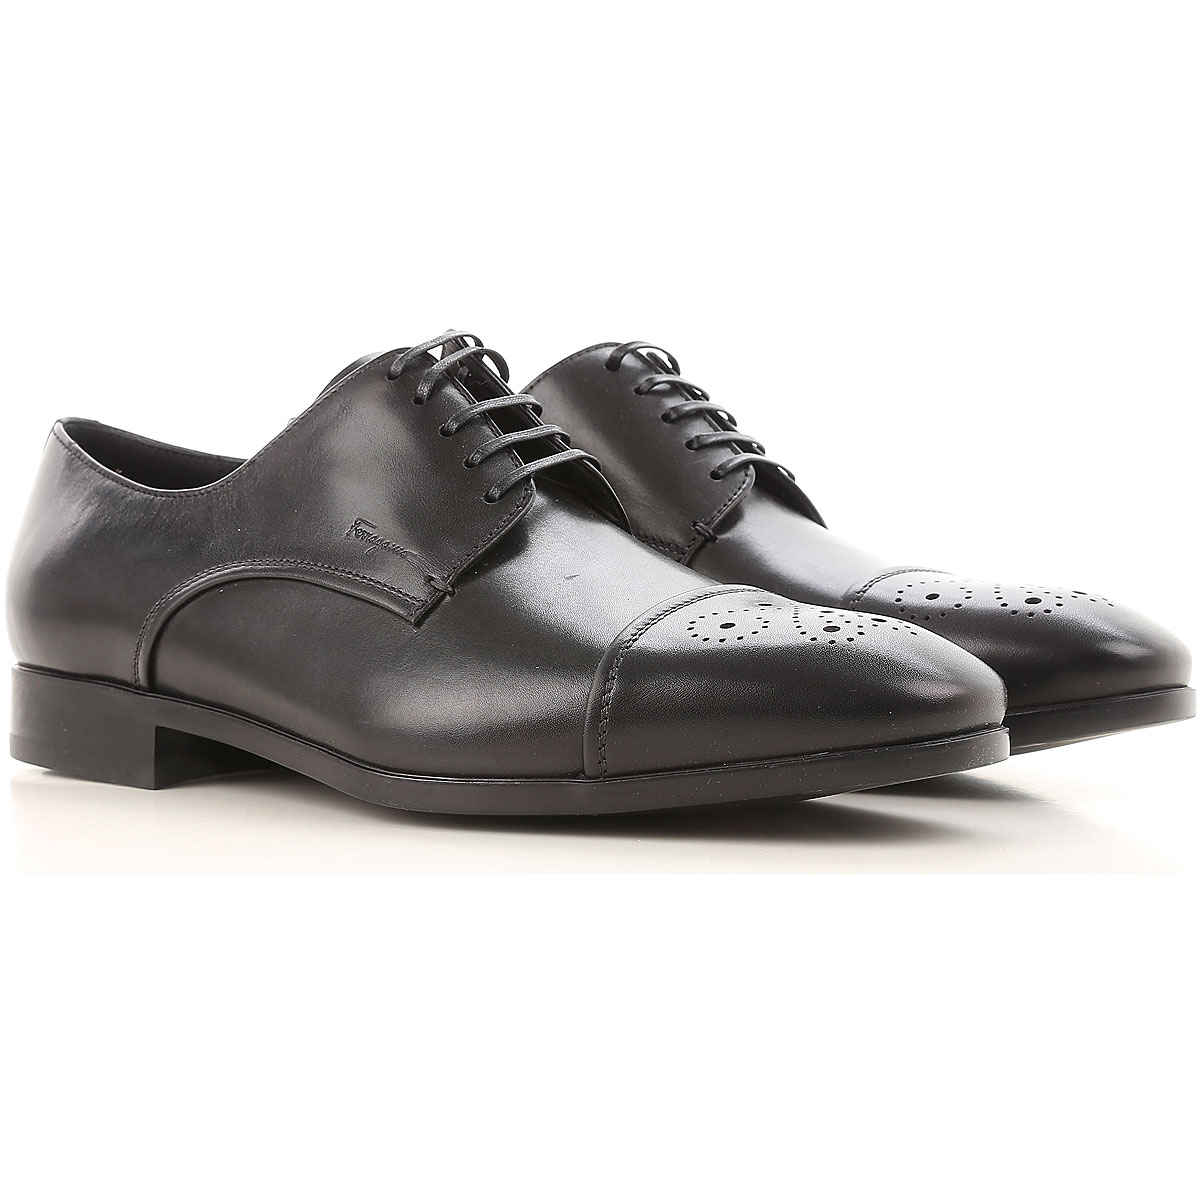 Image of Salvatore Ferragamo Lace Up Shoes for Men Oxfords, Derbies and Brogues On Sale, Black, Leather, 2017, 8.5 9